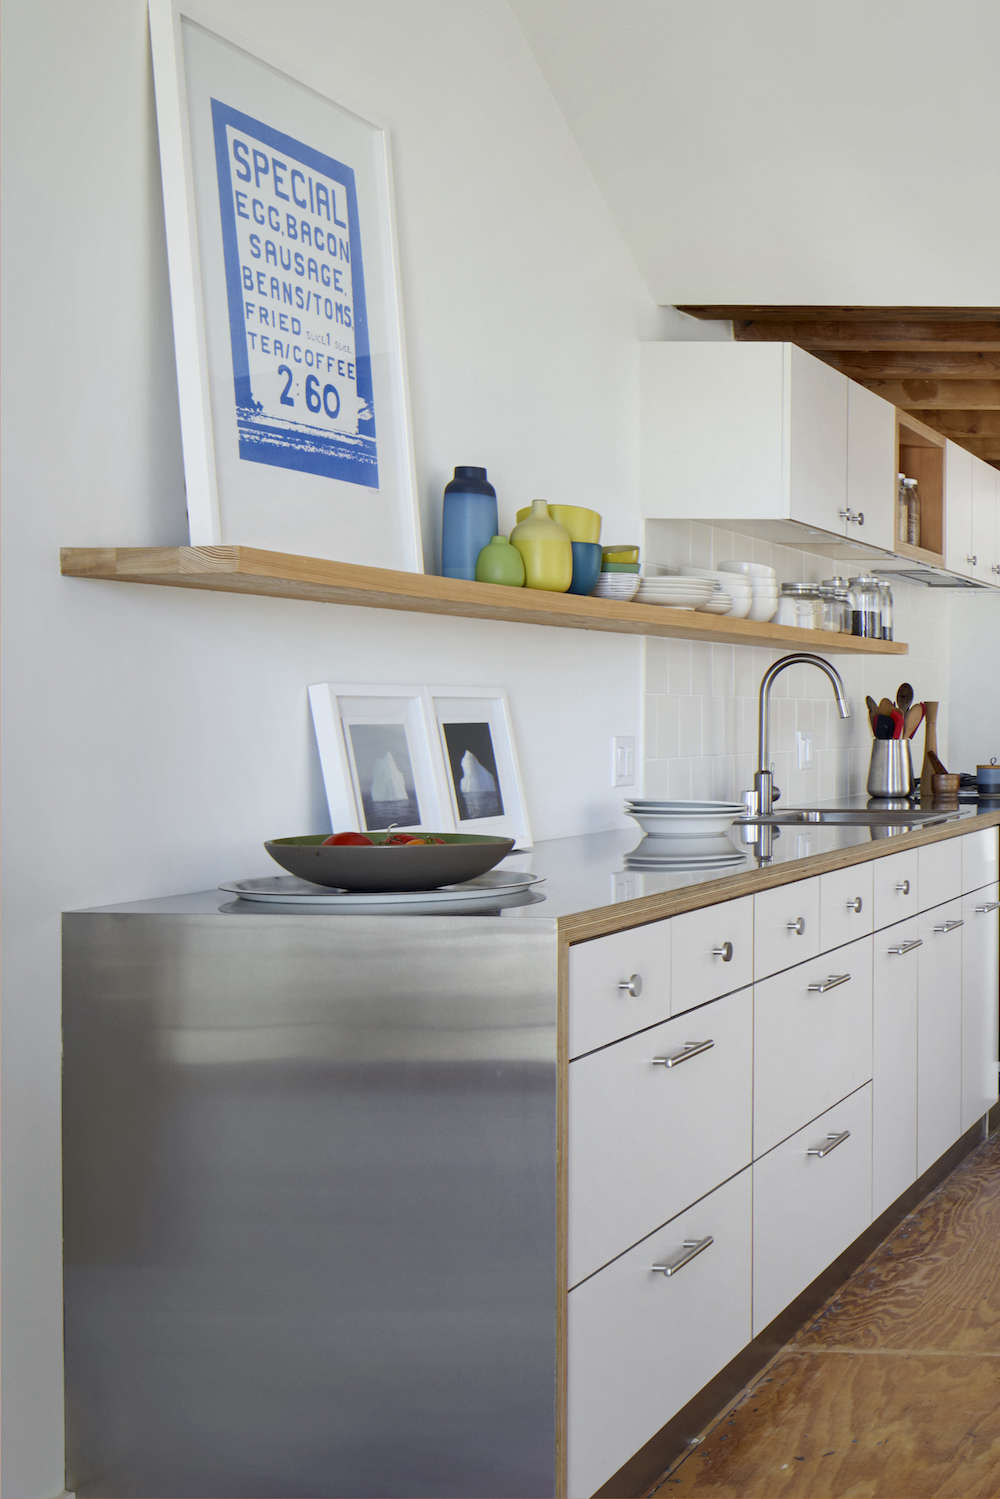 Kitchen Countertop Edges Remodeling 101 Stainless Steel Countertops Remodelista